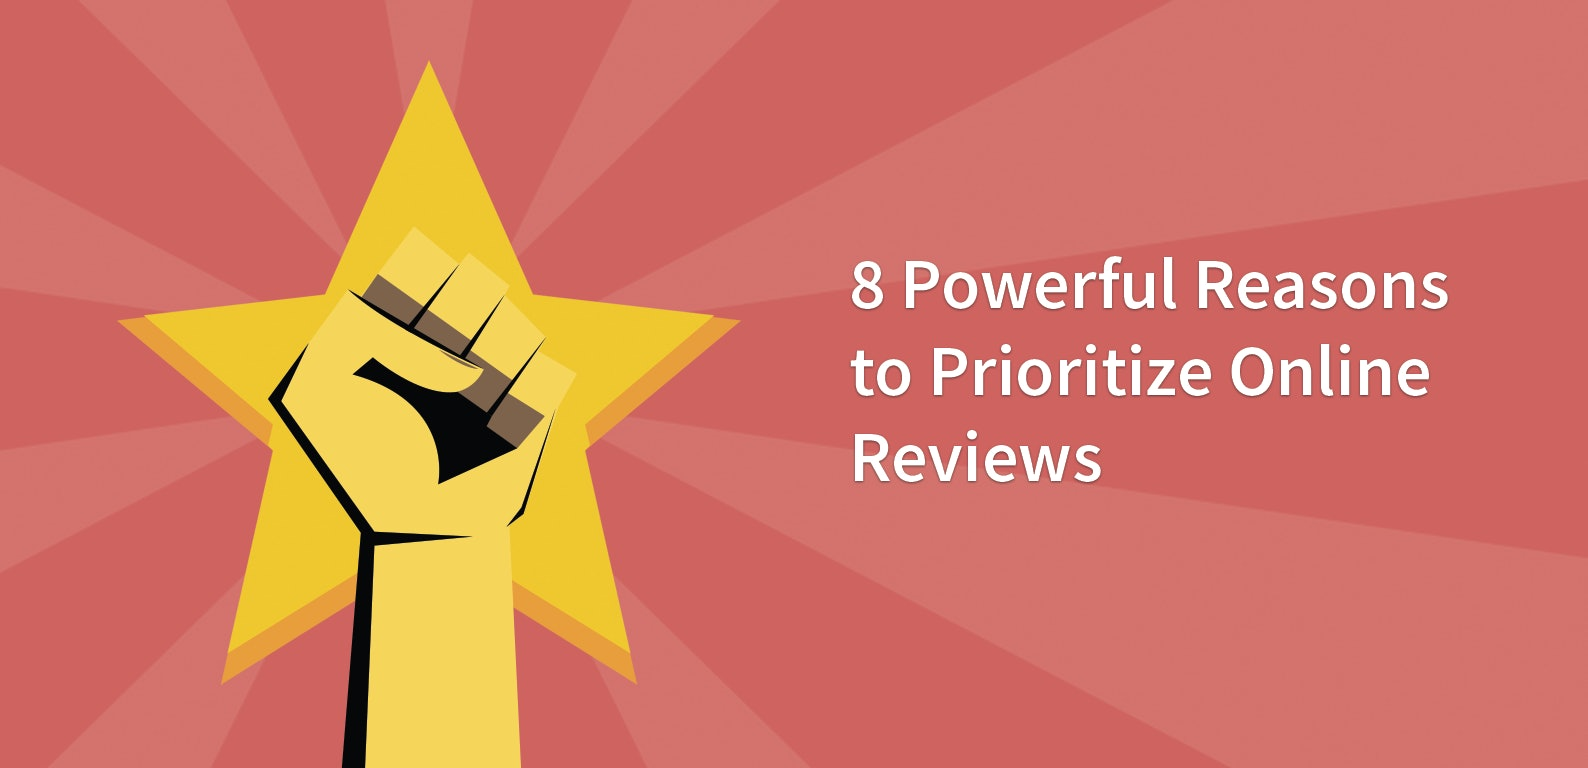 8 Powerful Reasons to Prioritize Online Reviews